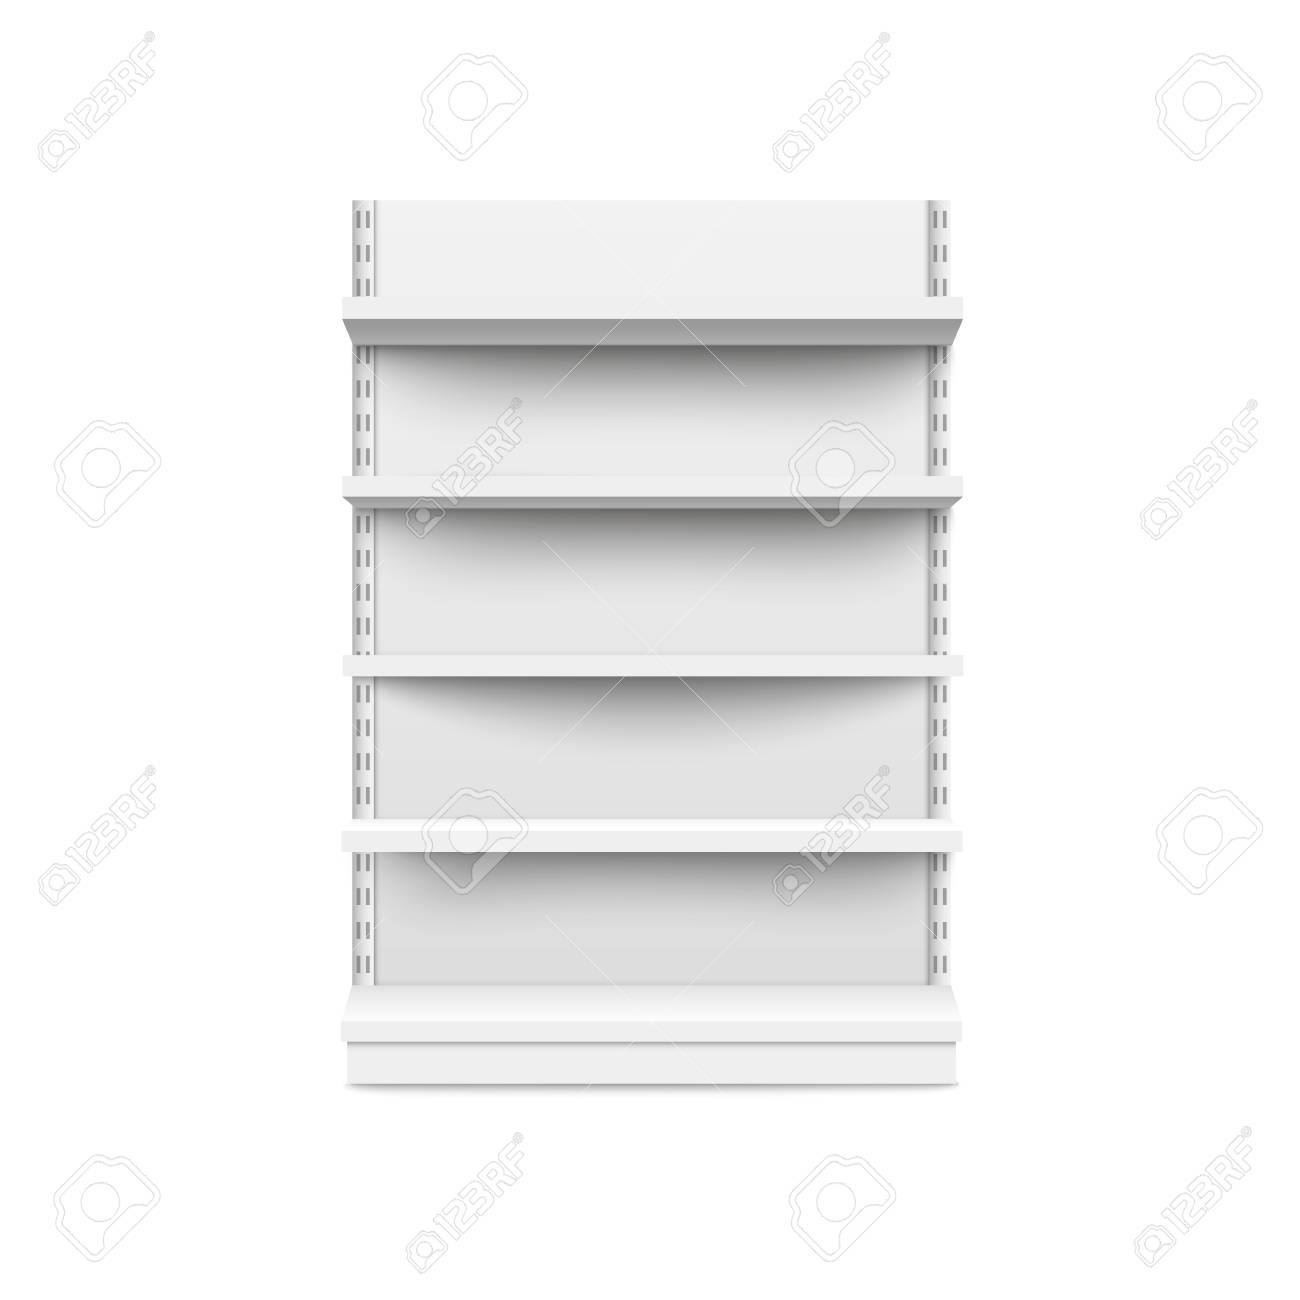 See bookshelf mockup stock video clips. Empty Retail Booth Stand Wide Mockup Isolated On White Background Supermarket Product Advertising Blank And Pos Display Mockup Front View Vector Illustration Royalty Free Cliparts Vectors And Stock Illustration Image 122280699